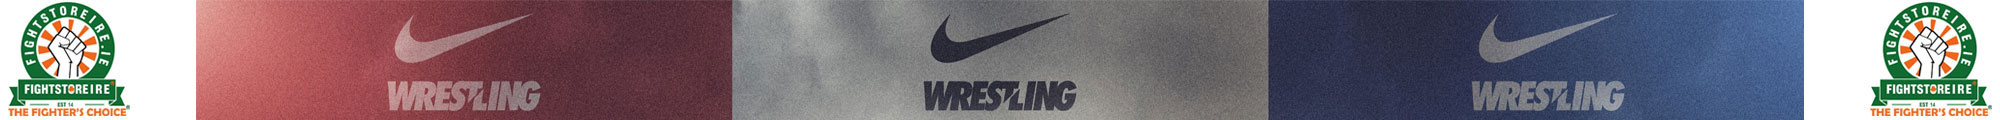 Nike Wrestling, Boxing and Weightlifting from Fightstore Ireland